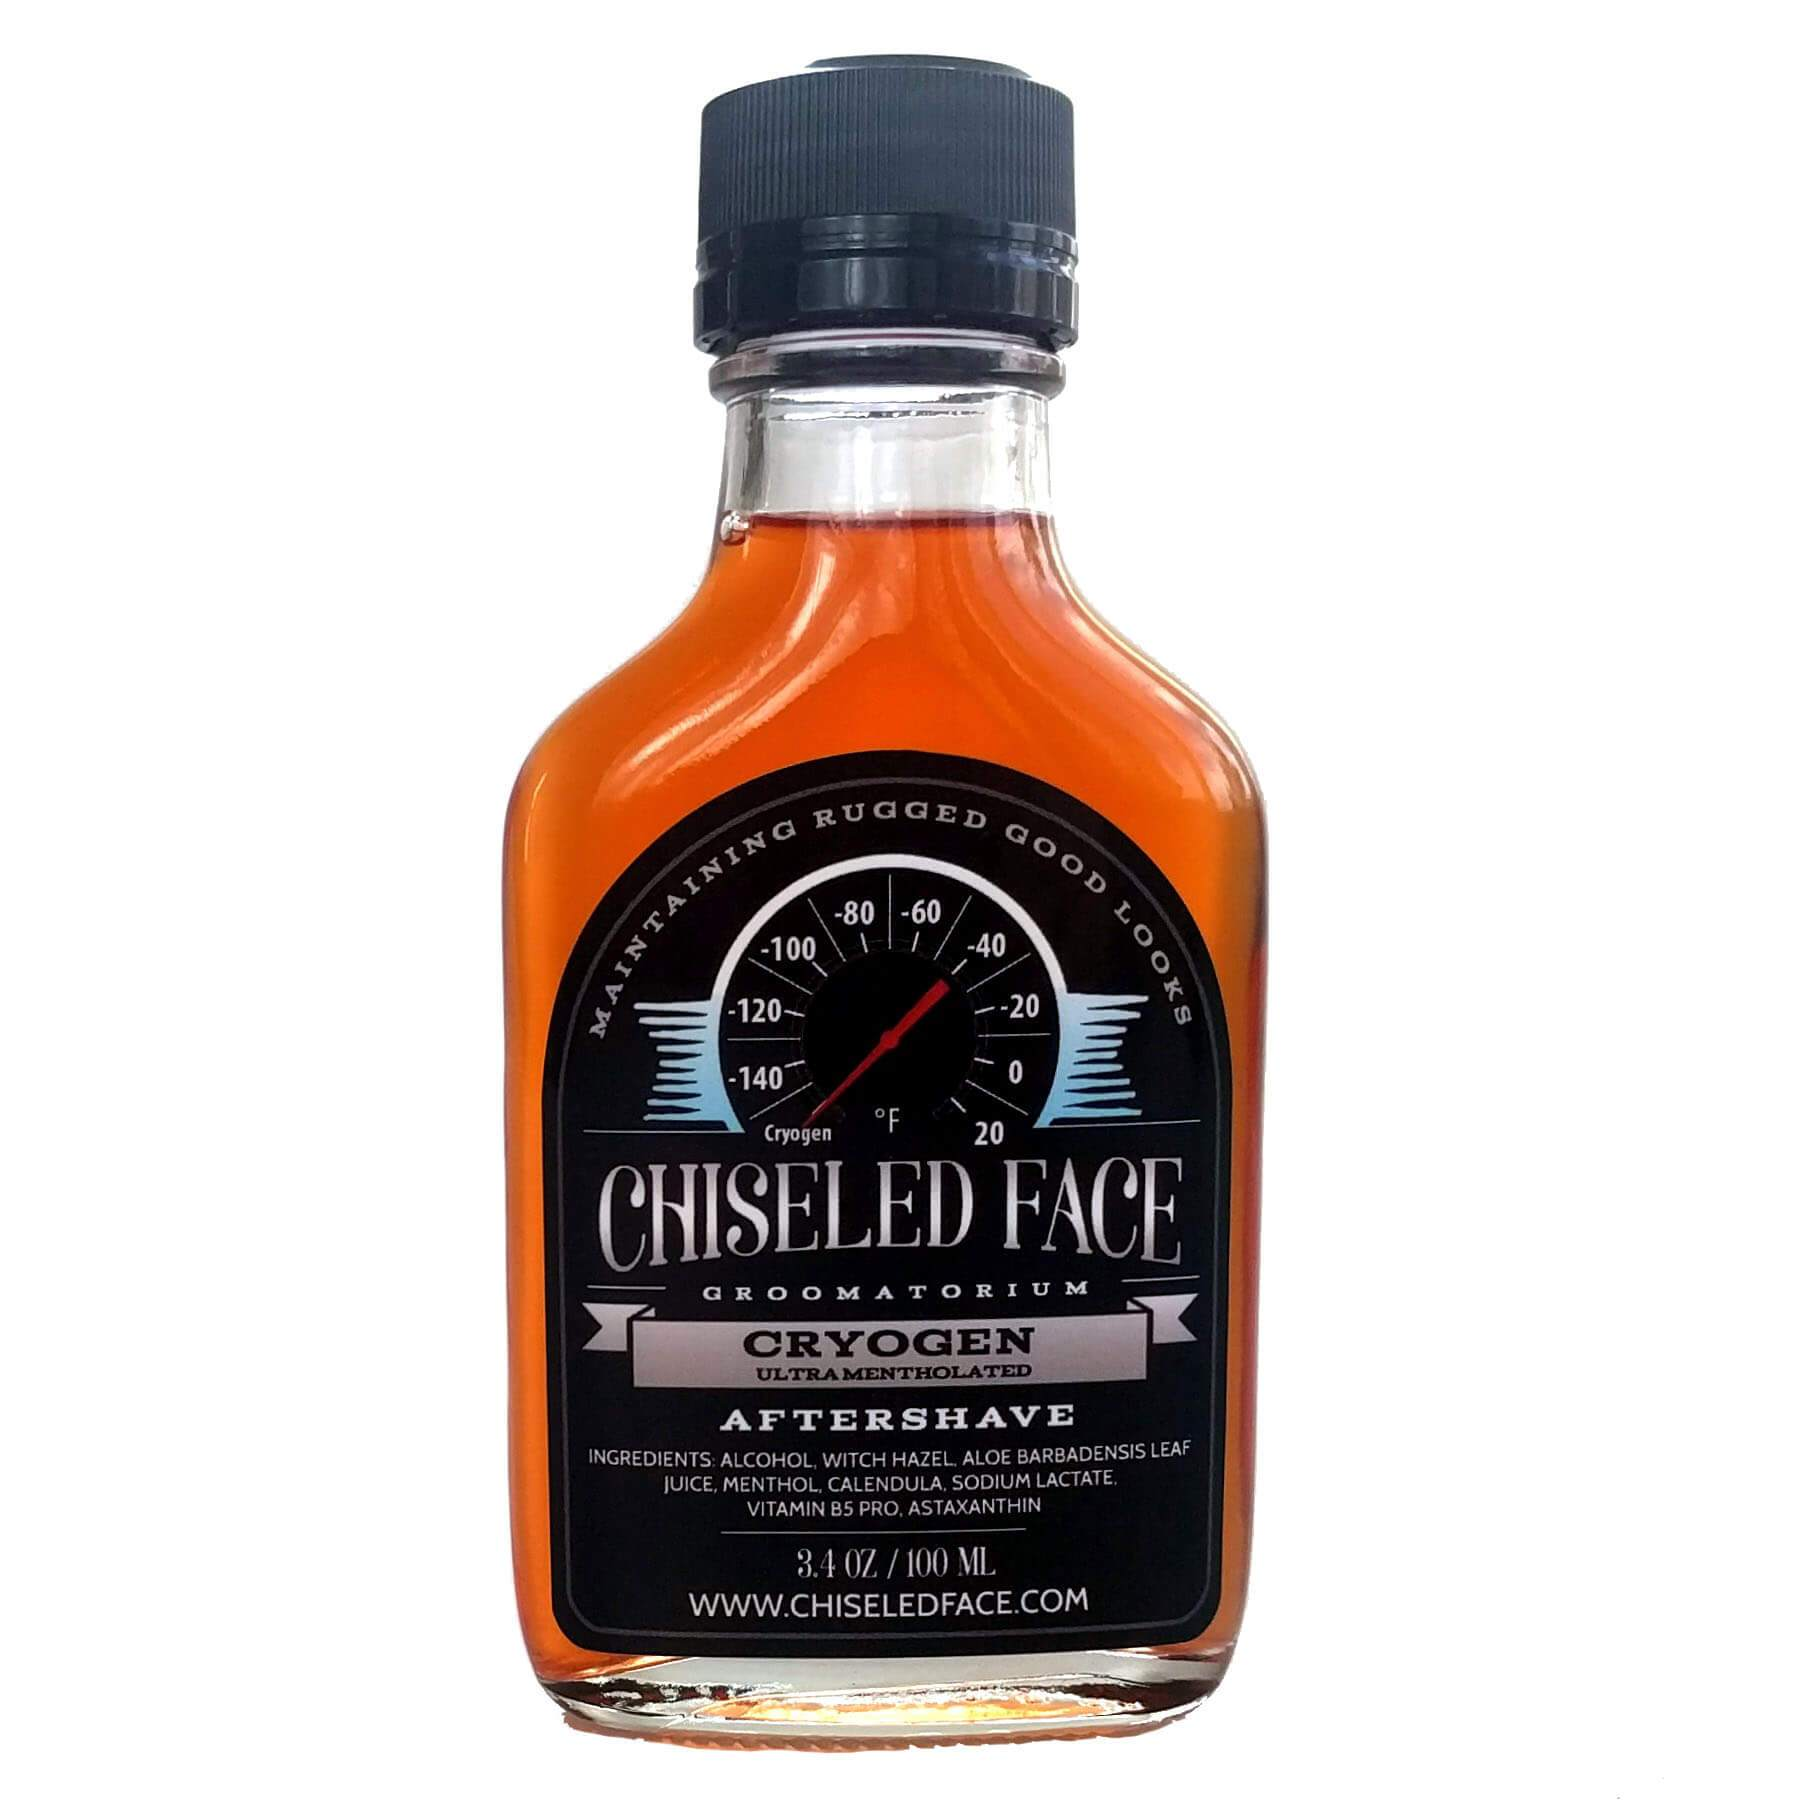 Chiseled Face - Cryogen - Aftershave image